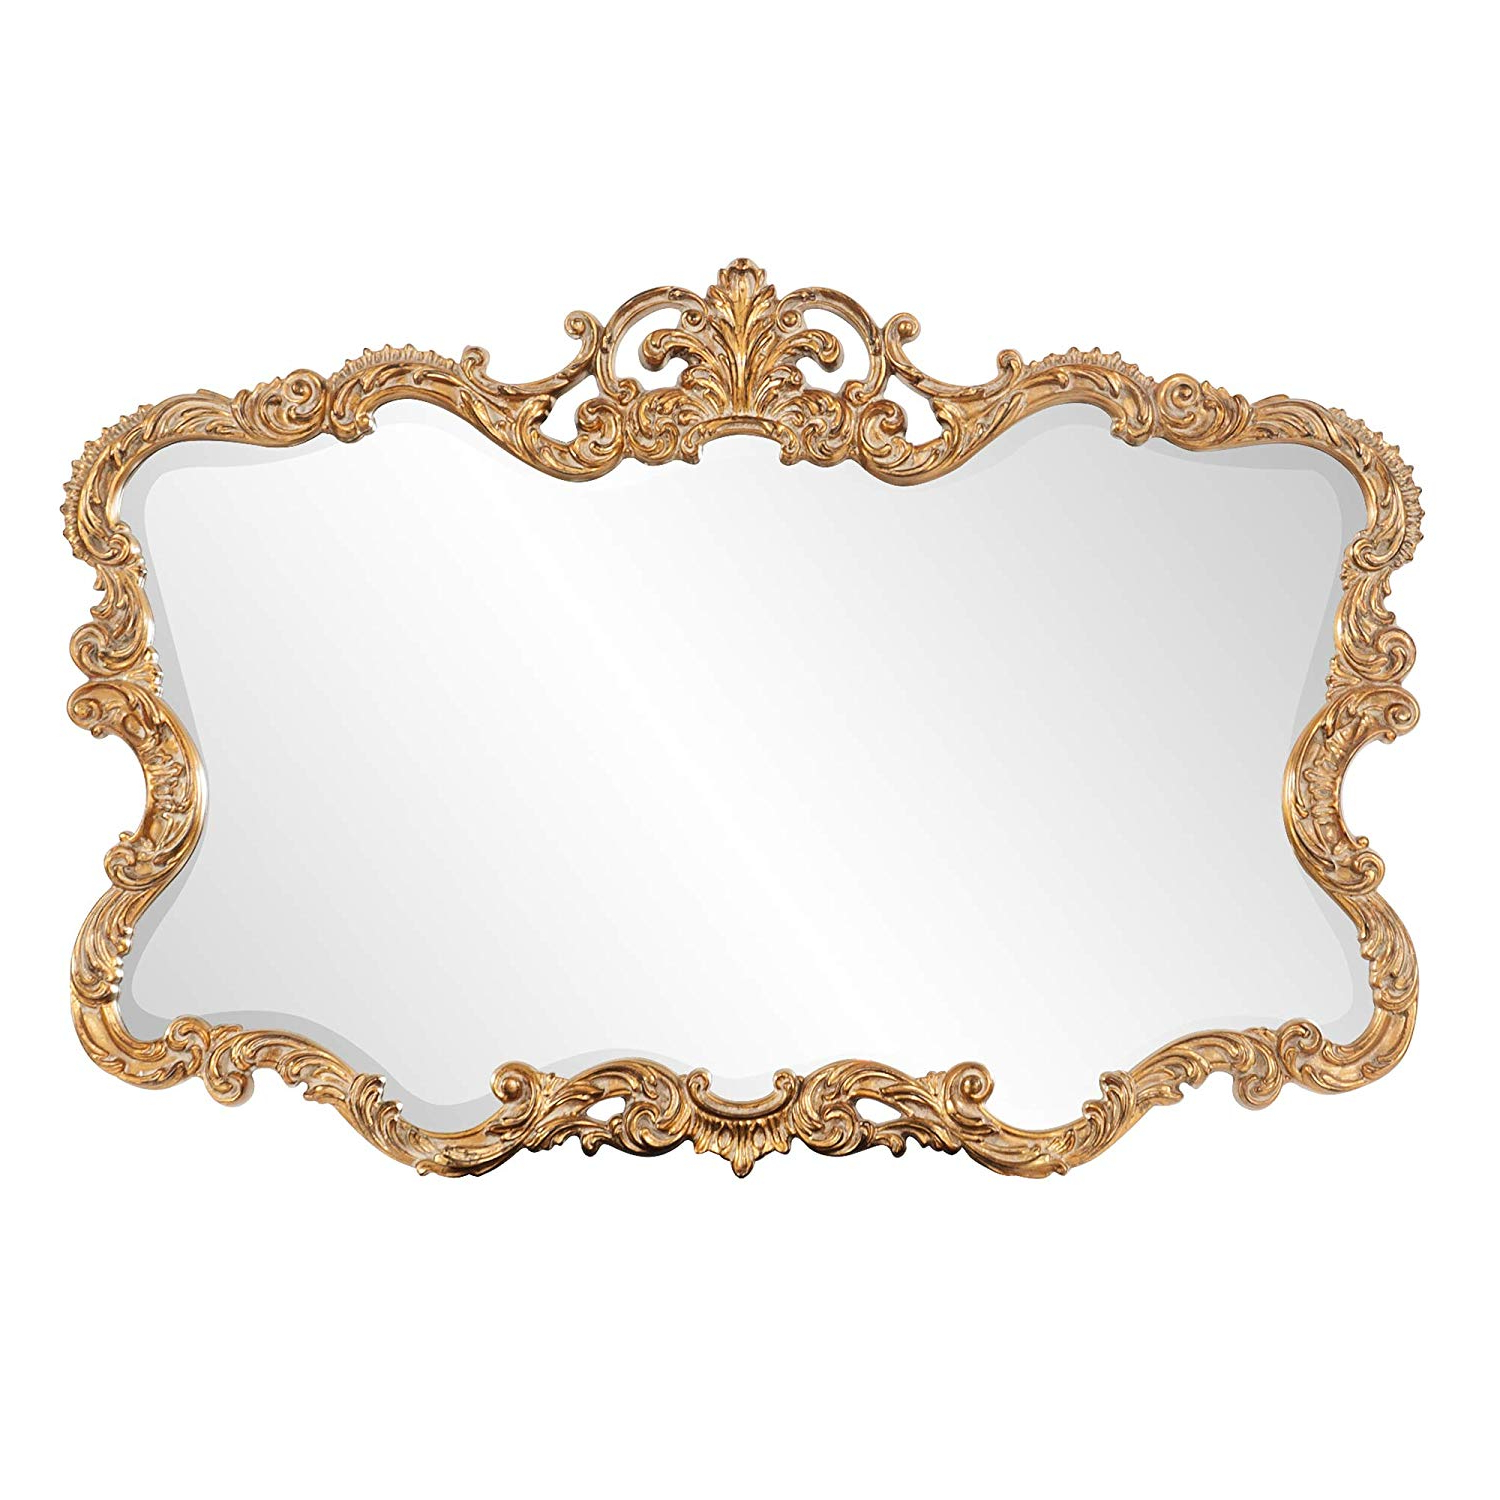 Trendy Howard Elliott Talida Mirror, Ornate Wall Focal Point, Resin Frame, Gold,  27 Inch X 38 Inch X 1 Inch Pertaining To Talida Wall Mirrors (View 1 of 20)